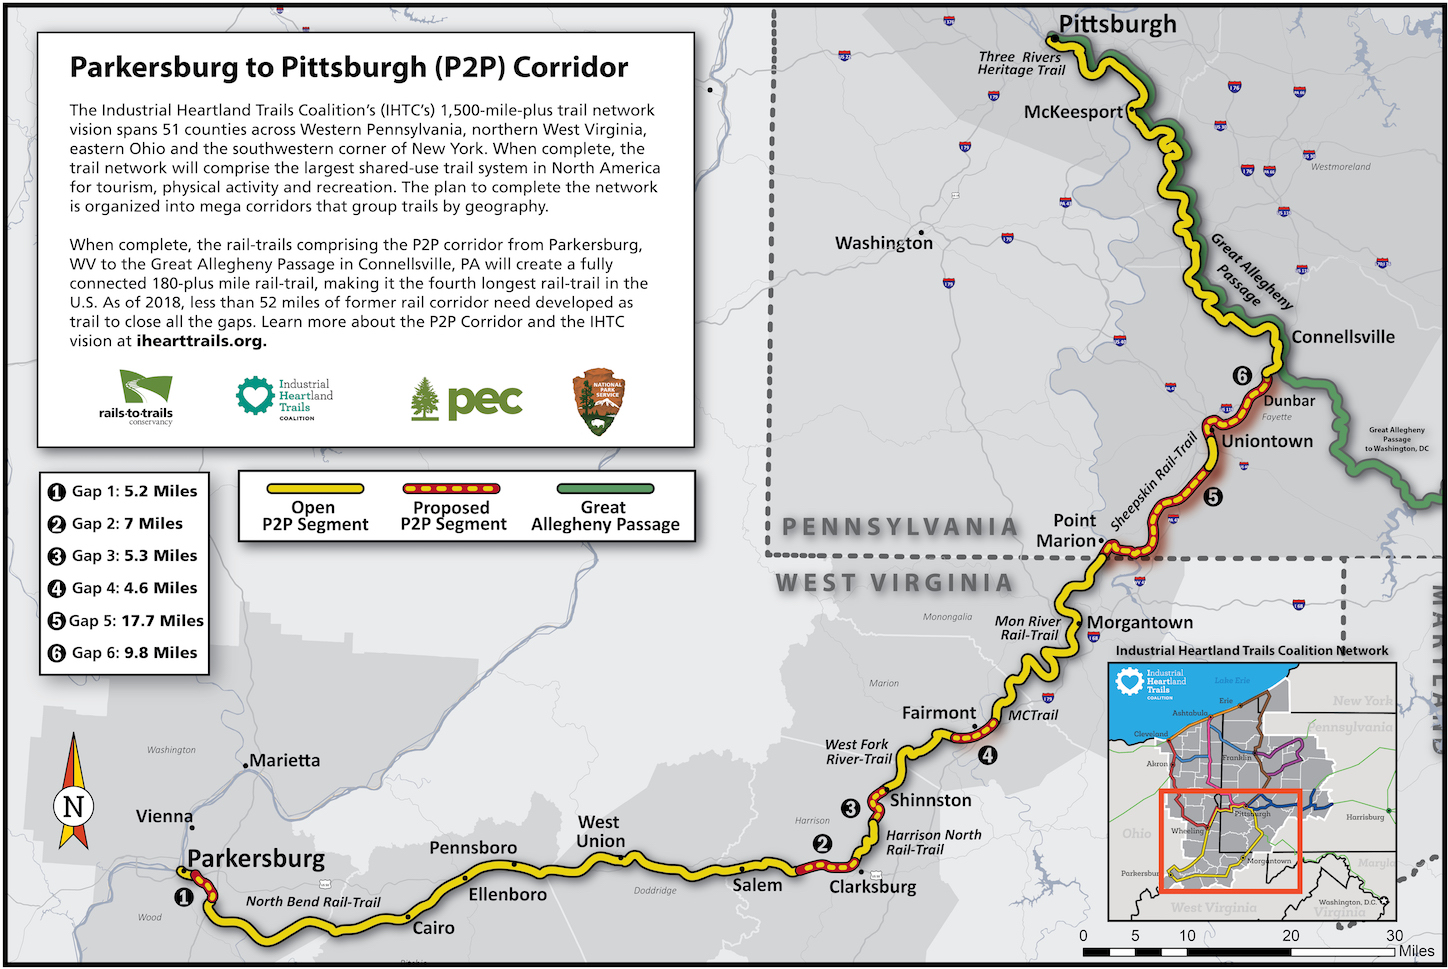 "See full map on page 1 in <a href=""https://www.railstotrails.org/resourcehandler.ashx?name=connecting-parkersburg-to-pittsburgh-by-rail-trail-bringing-a-world-class-trail-network-to-west-virginia&id=14639&fileName=P2P_Feasibility_Study_042418.pdf"">P2P Feasibility Study</a>"